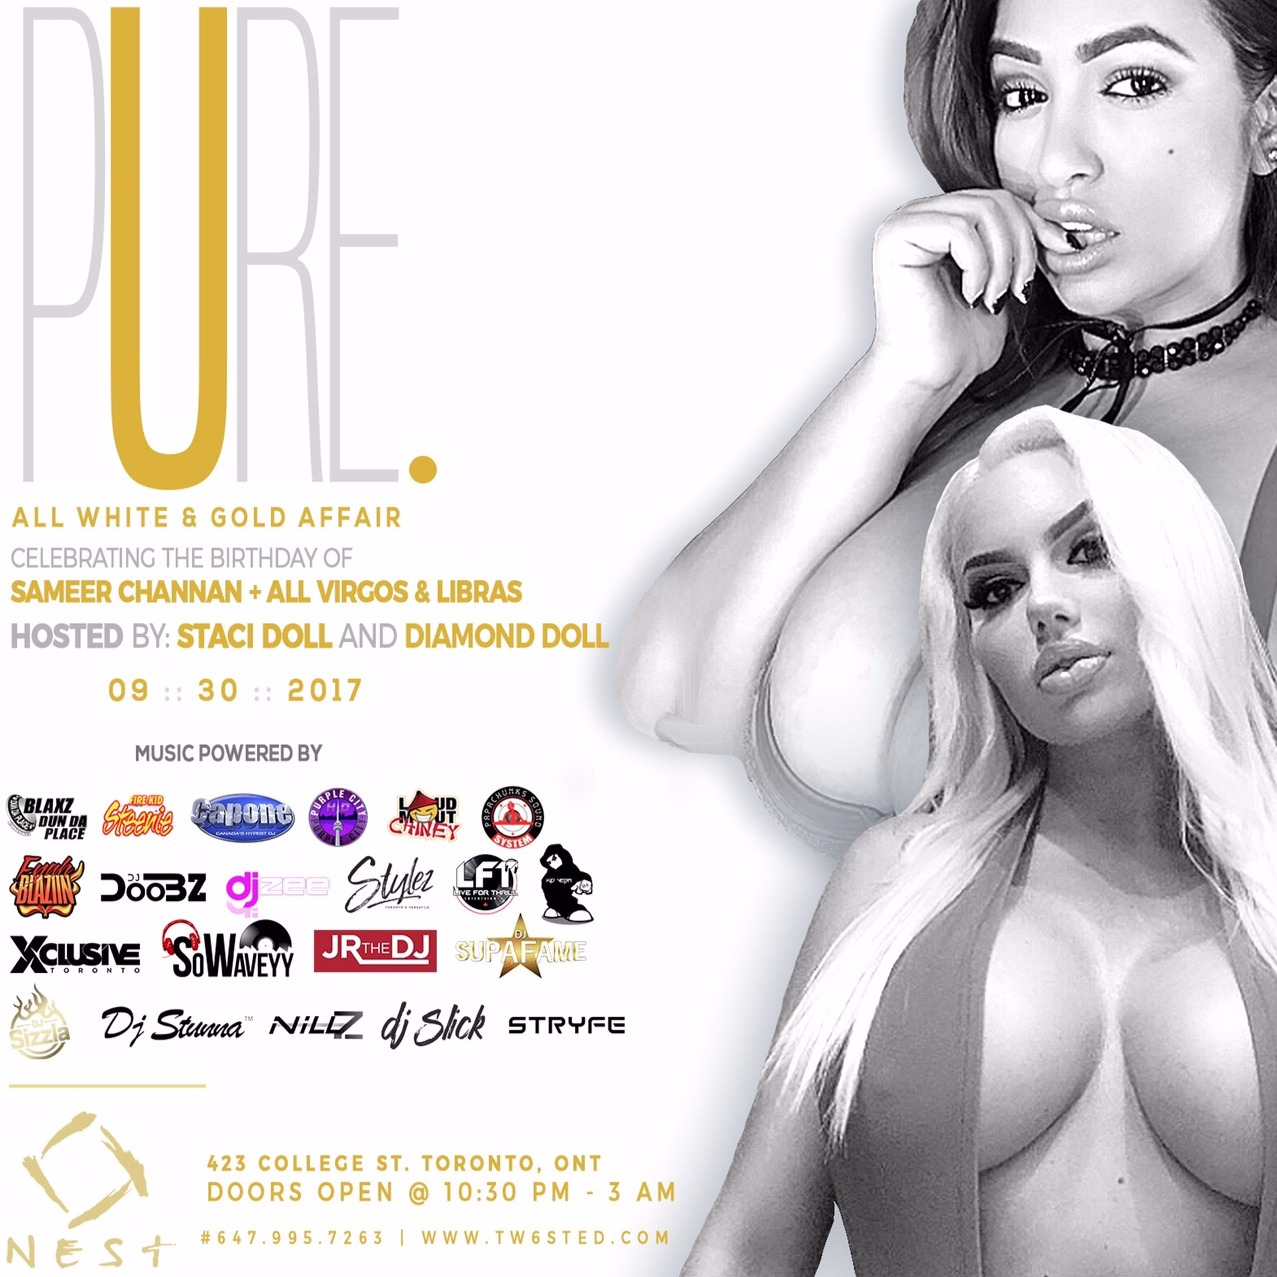 PURE: All White & Gold Affair | Hosted By Staci & Diamond Doll | Sept 30th